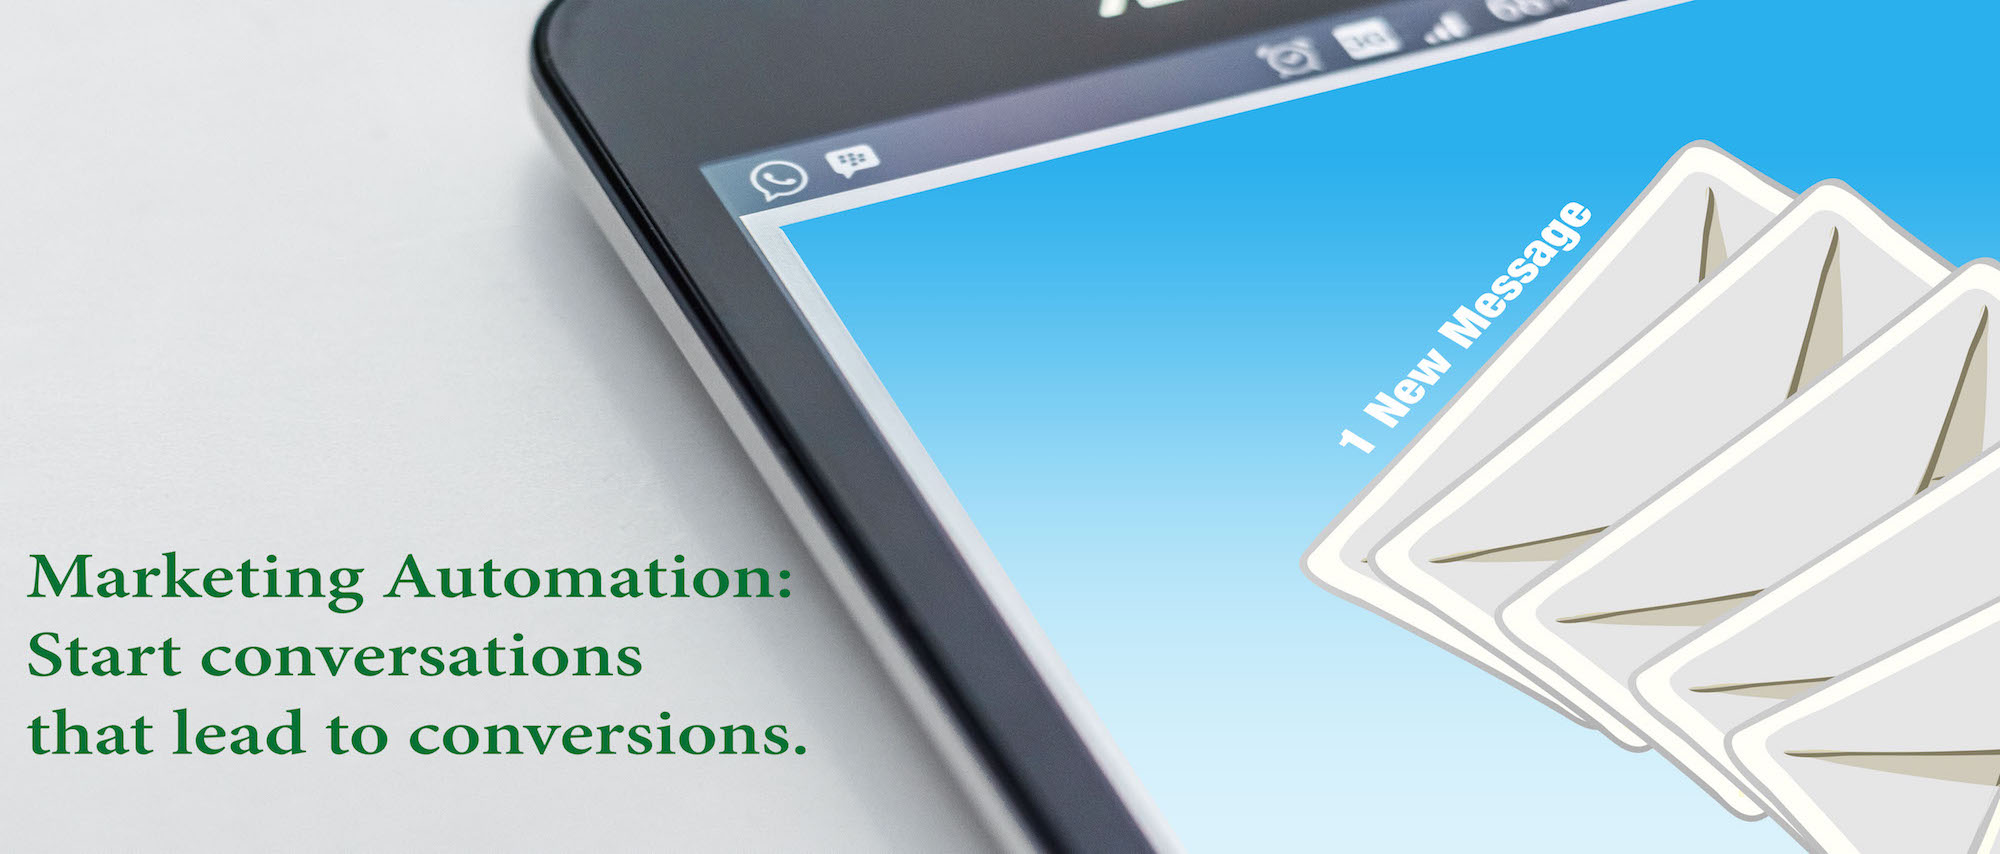 Marketing Automation: Start conversions that lead to conversions